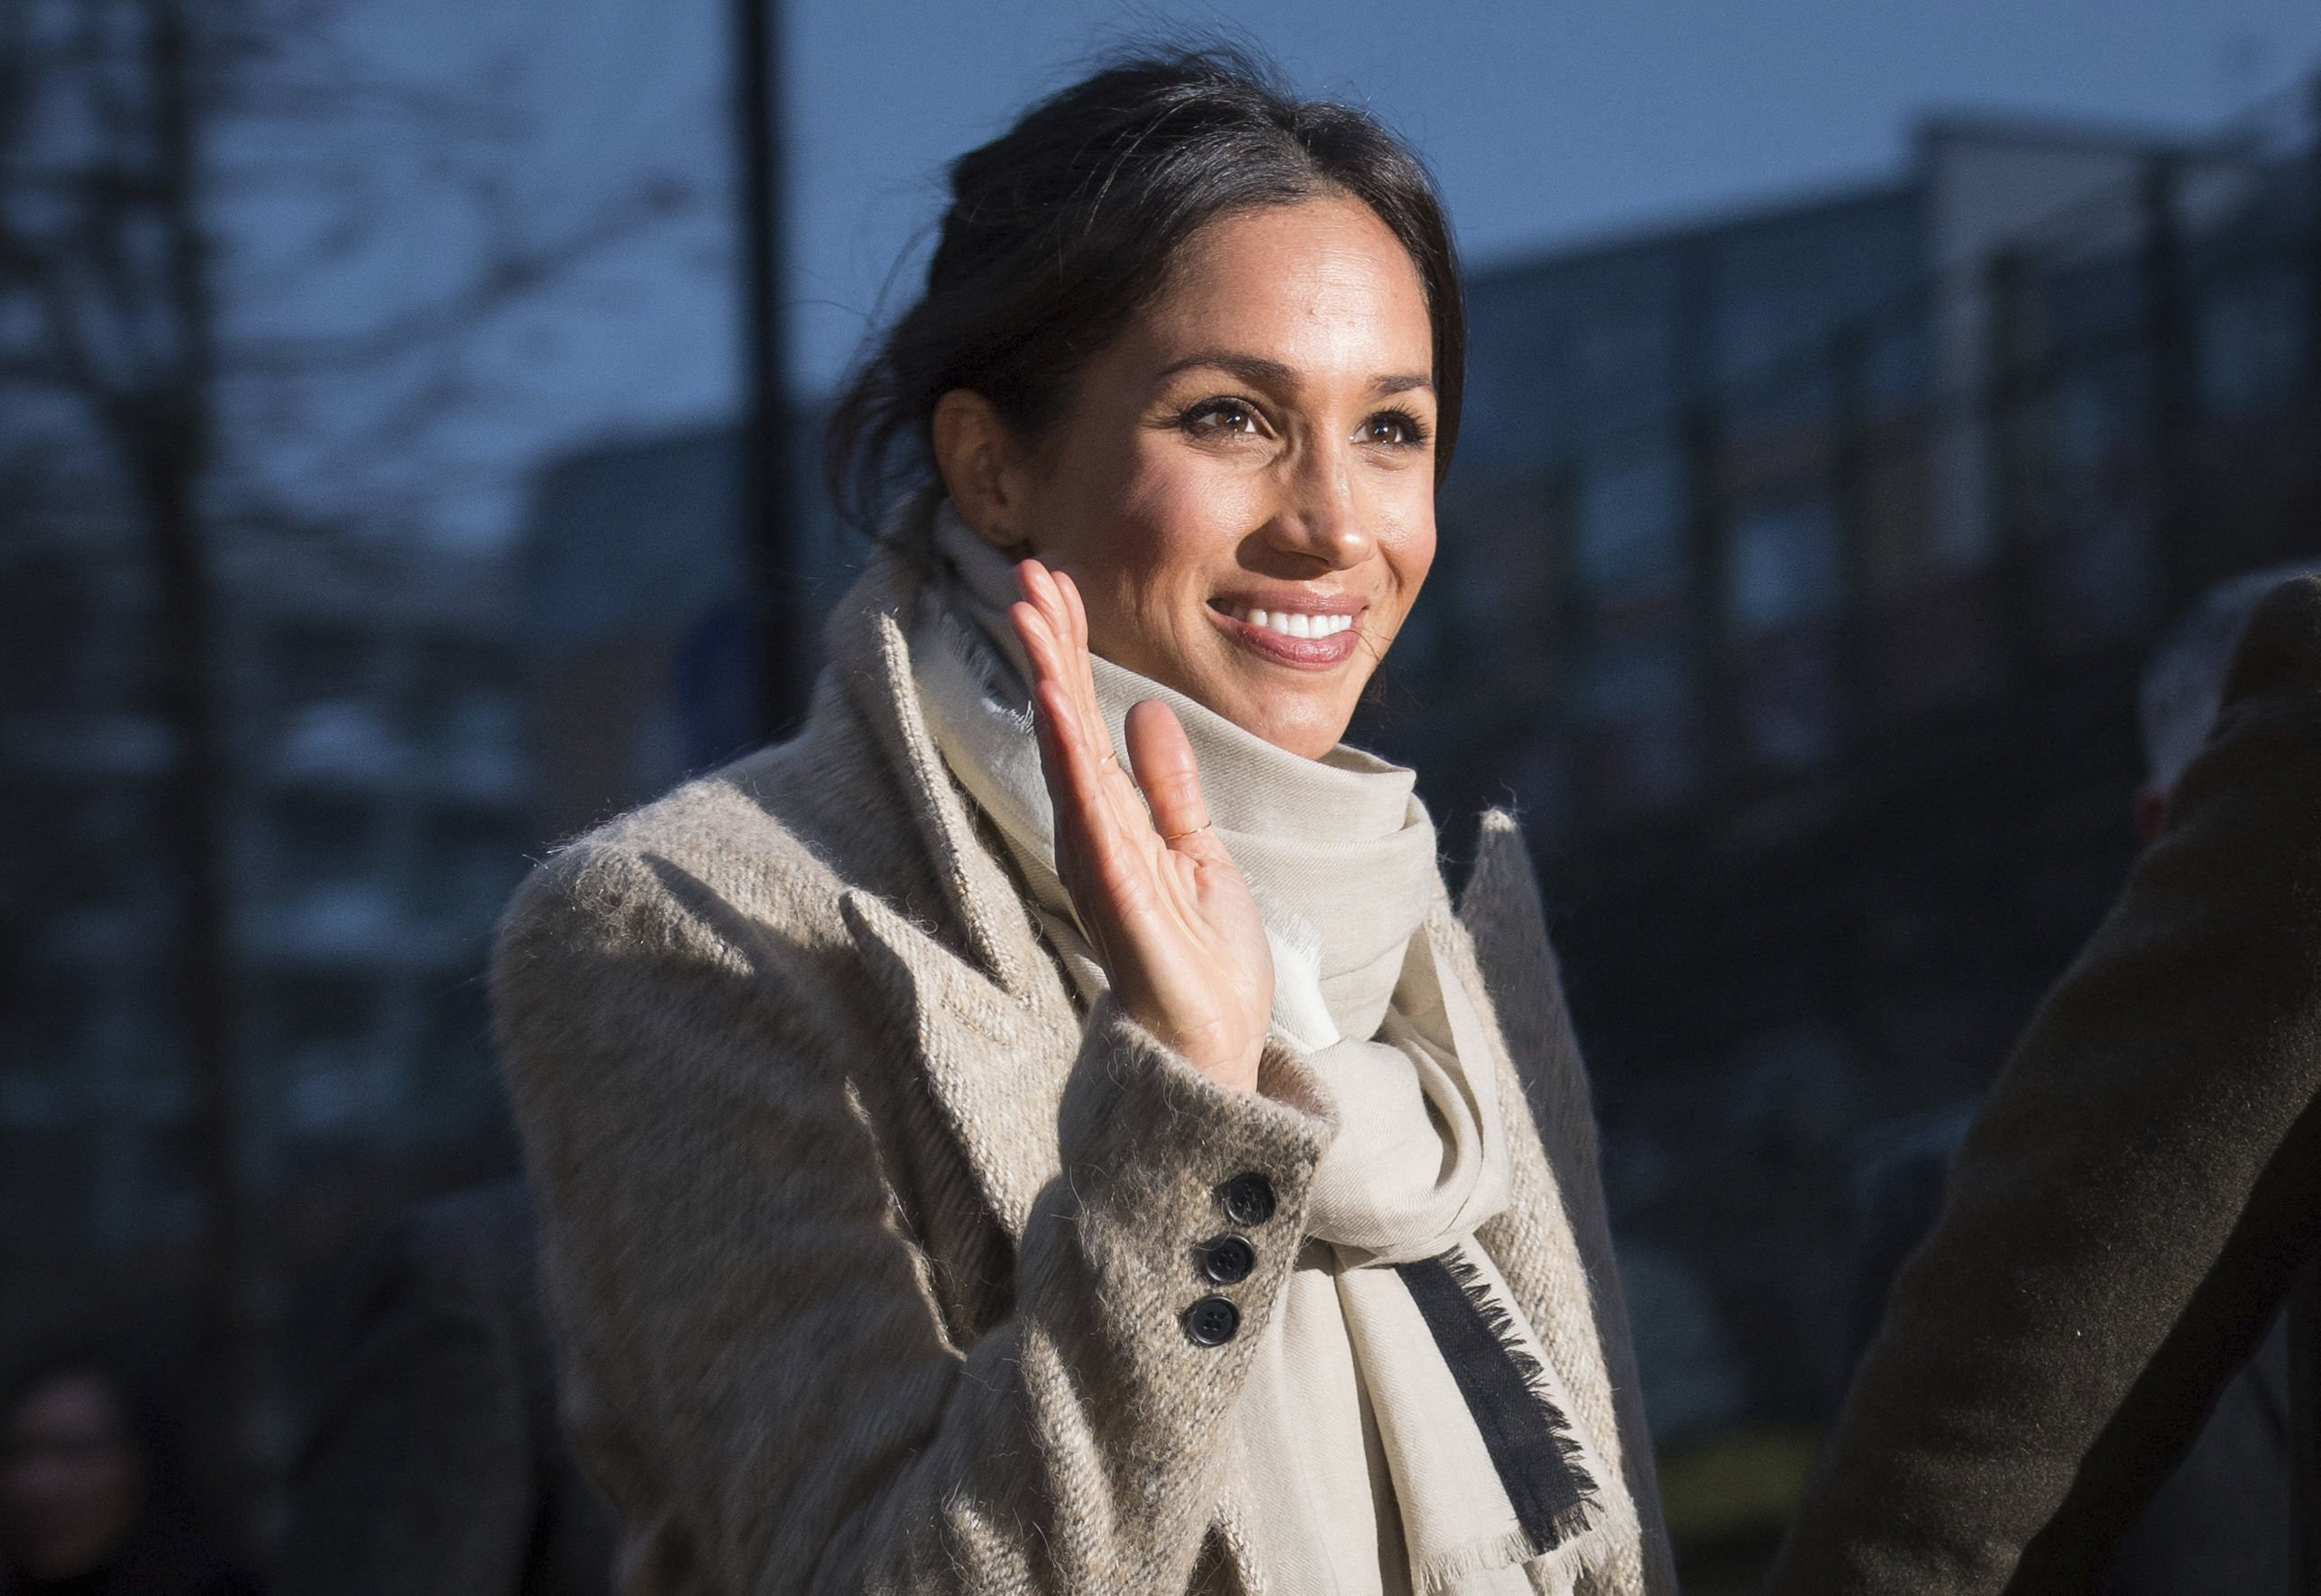 Royal fiancee Meghan Markle shuts down social media accounts